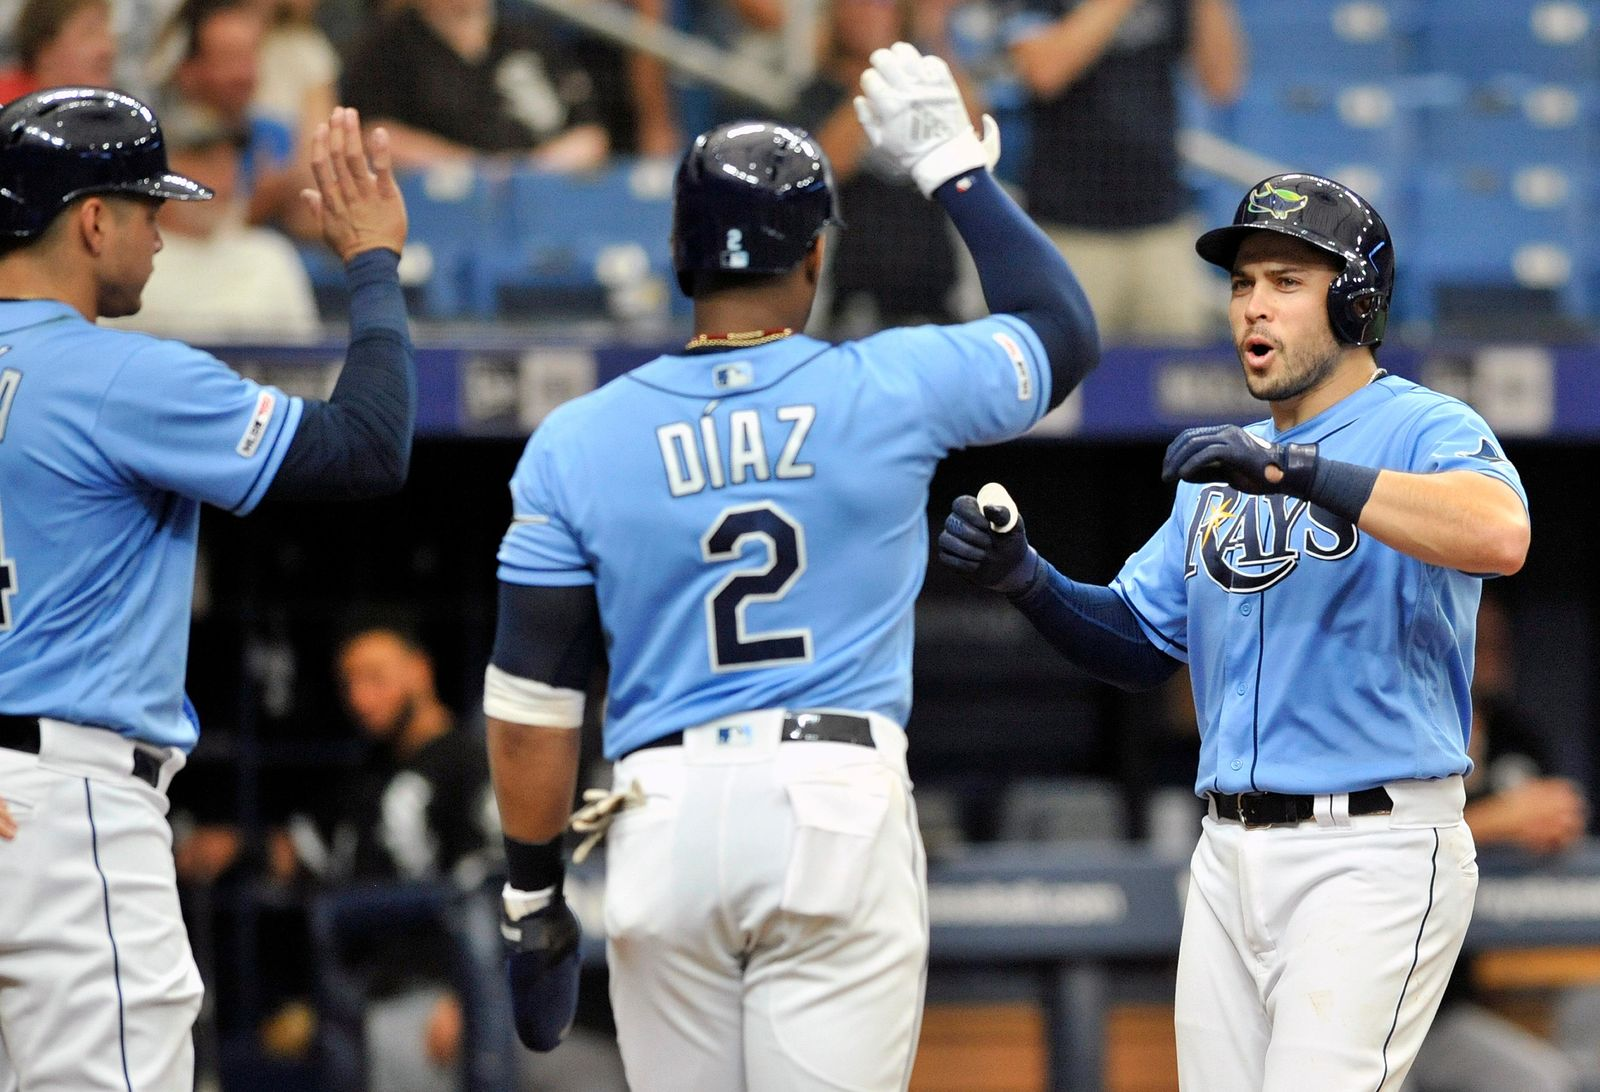 Tampa Bay Rays' Avisail Garcia, left, Yandy Diaz, center, and Travis d'Arnaud, right, celebrate d'Arnaud's grand slam off Chicago White Sox starter Dylan Cease during the second inning of a baseball game Sunday, July 21, 2019, in St. Petersburg, Fla. (AP Photo/Steve Nesius)